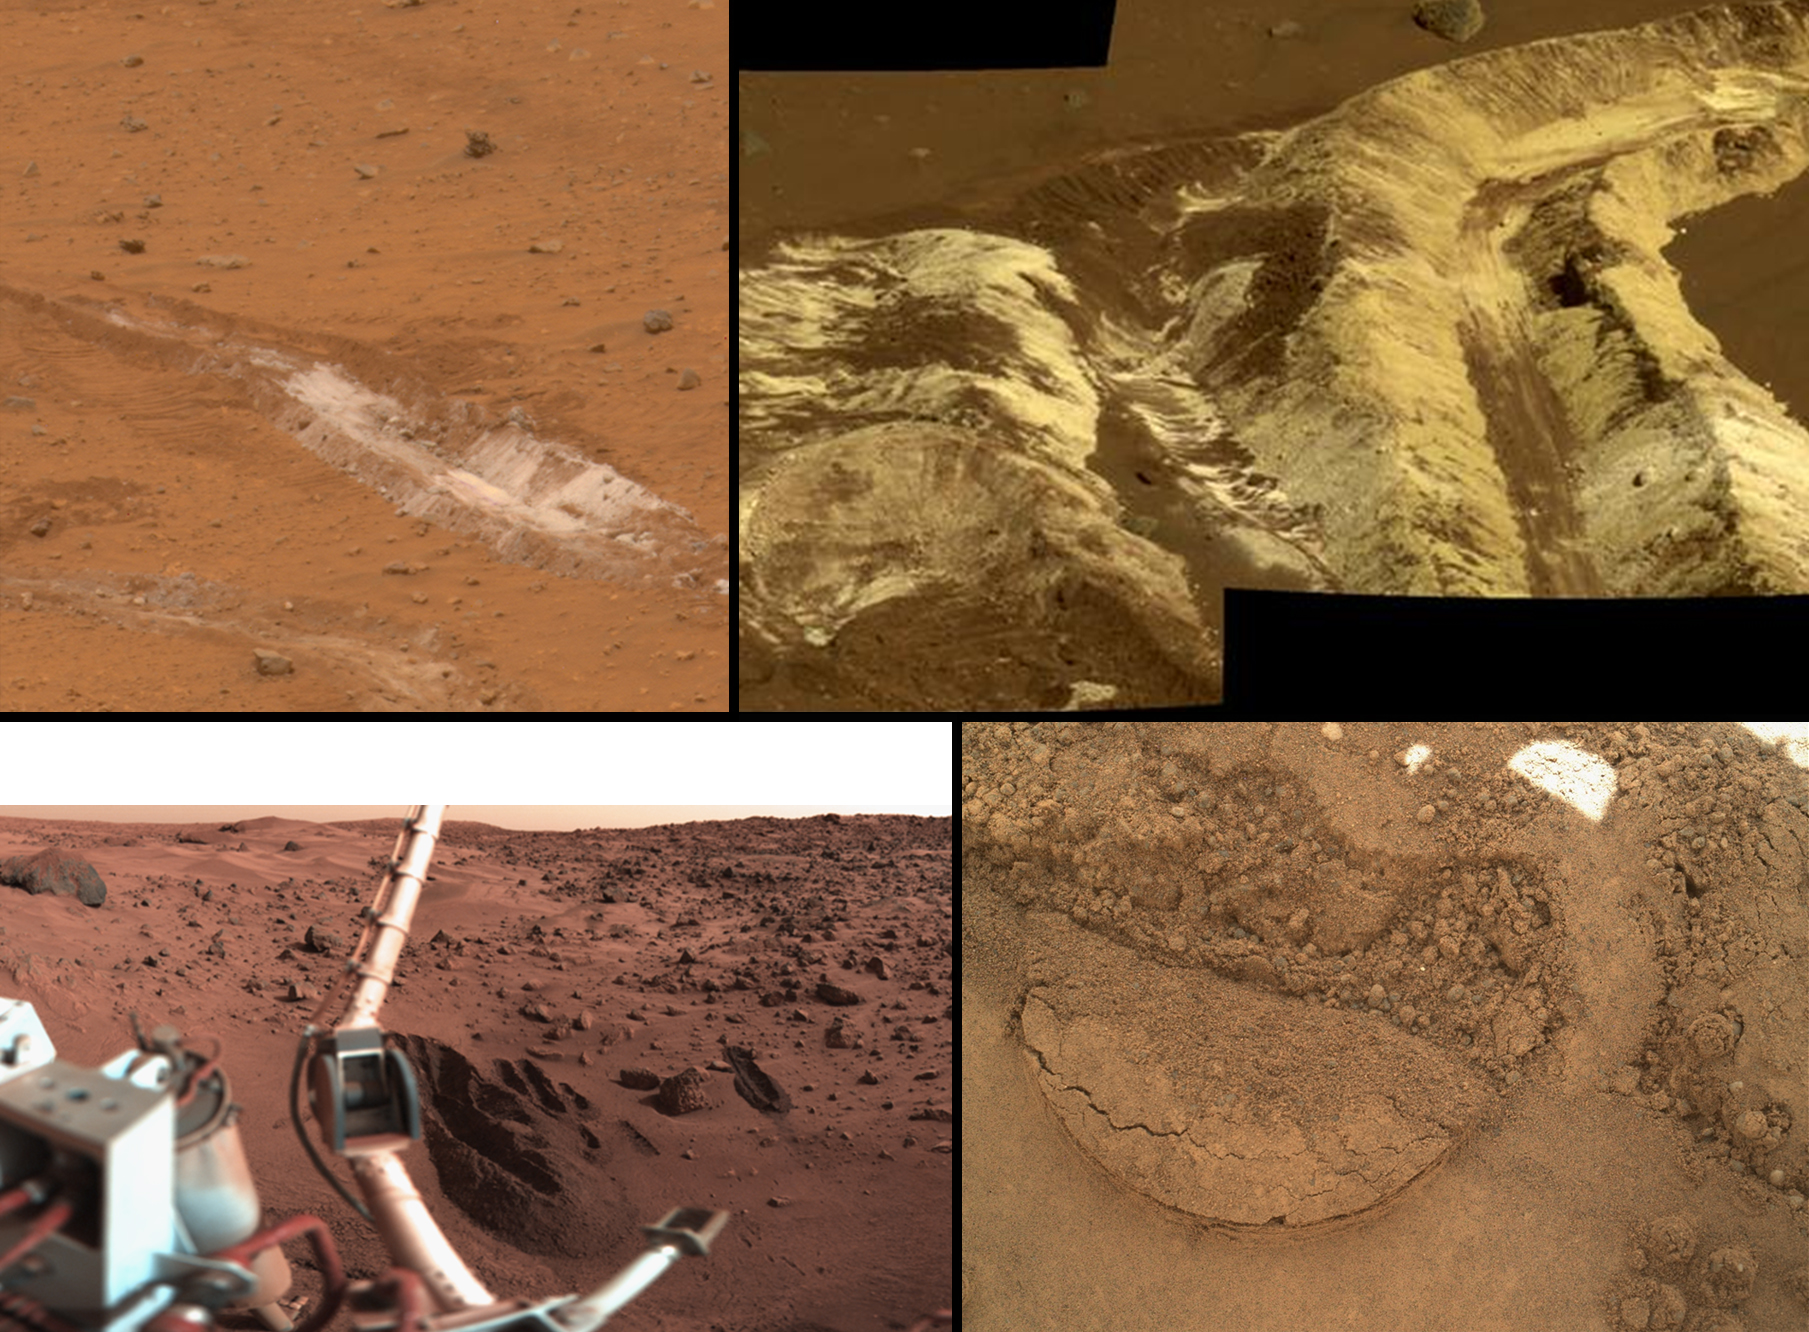 A sampling of martian soils nasa for Things made up of soil